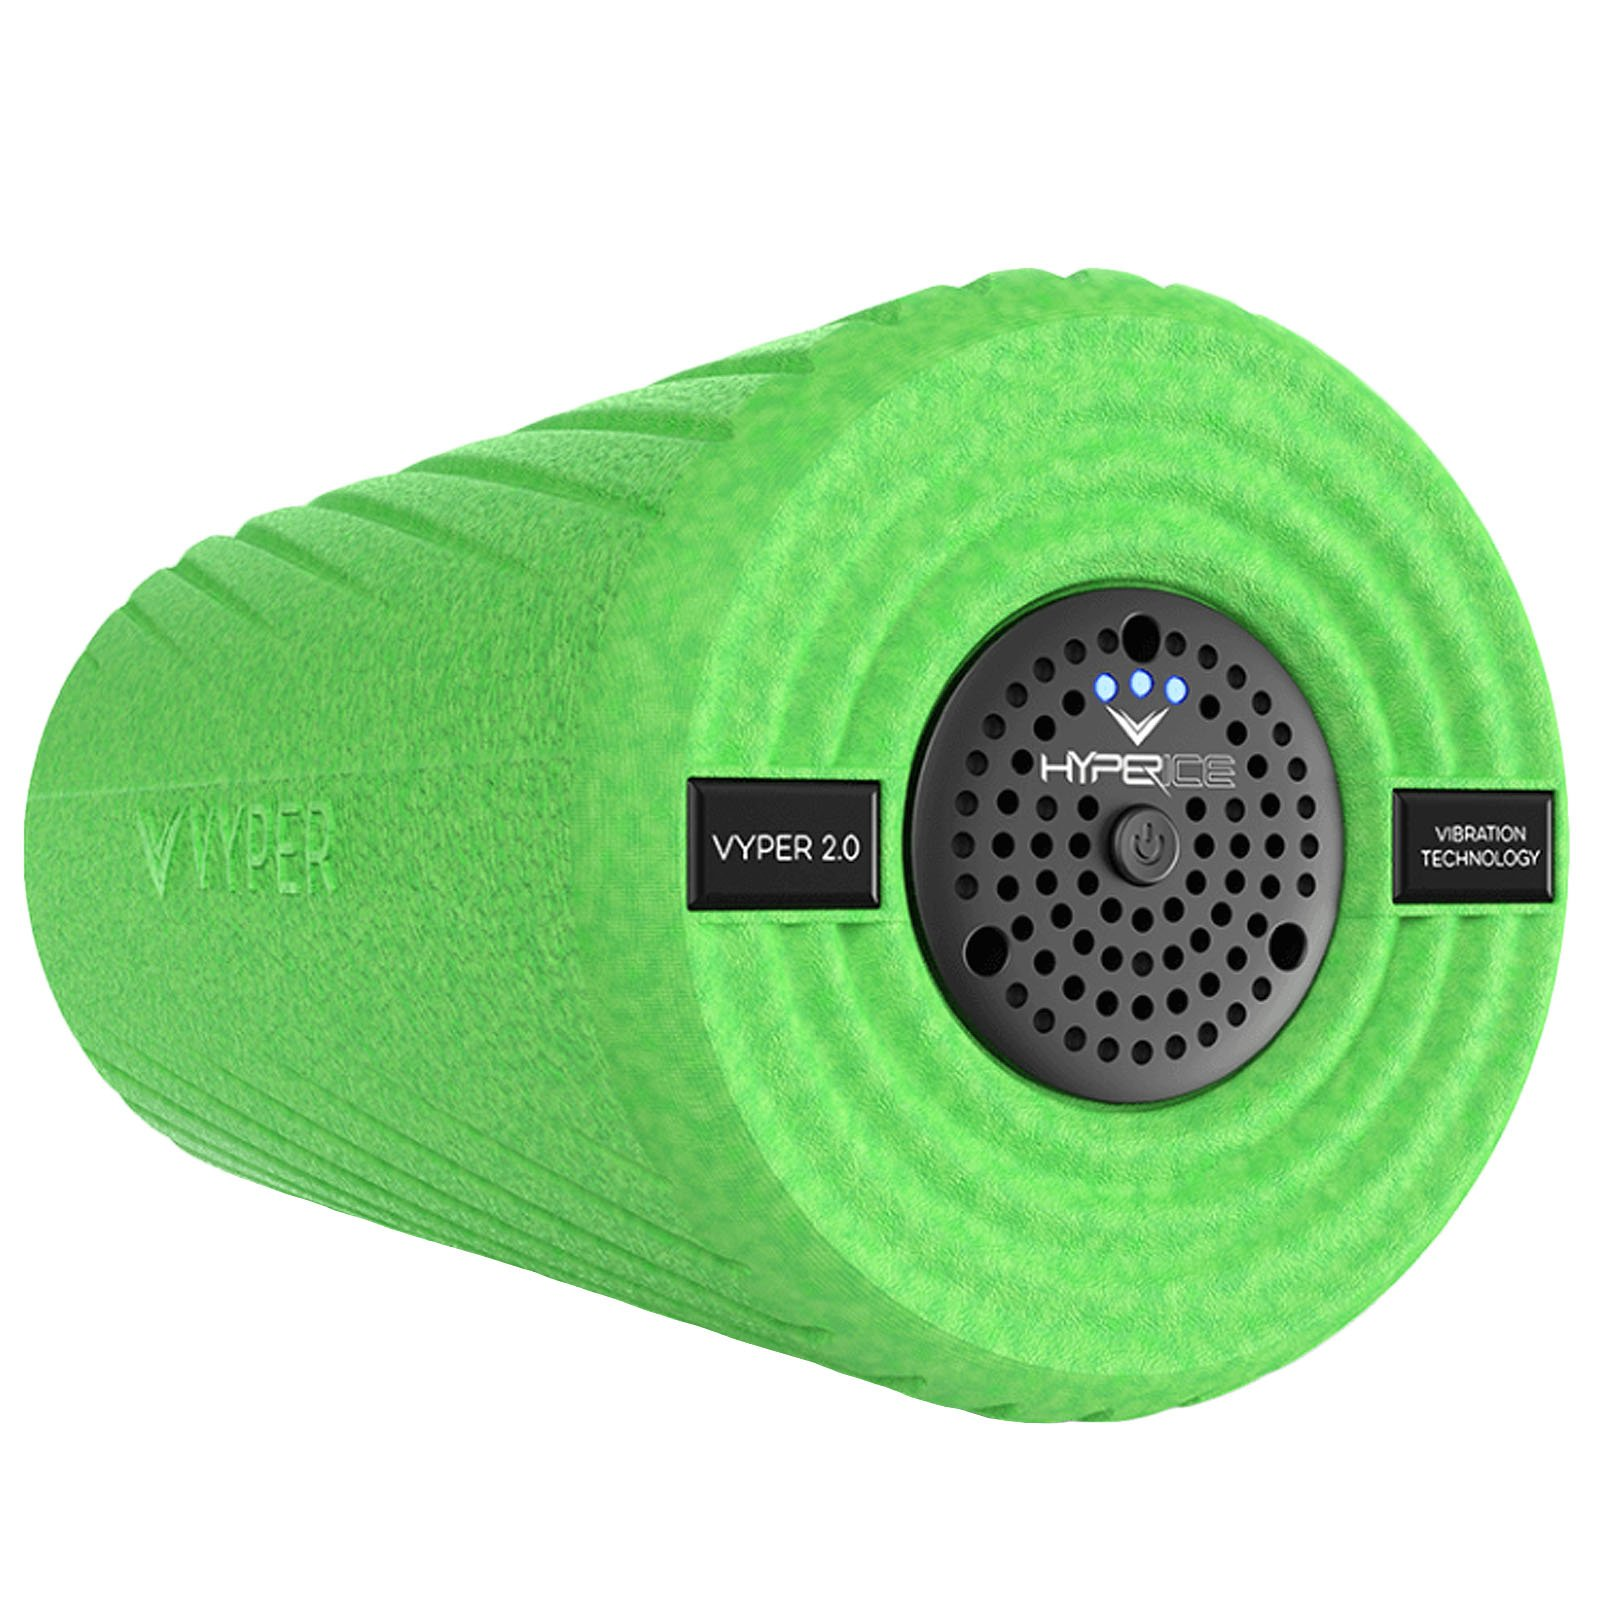 Hyperice Vyper 2.0 Vibrating Massage Foam Roller: for Crossfit, Yoga, Trigger Point, Stretching & Recovery